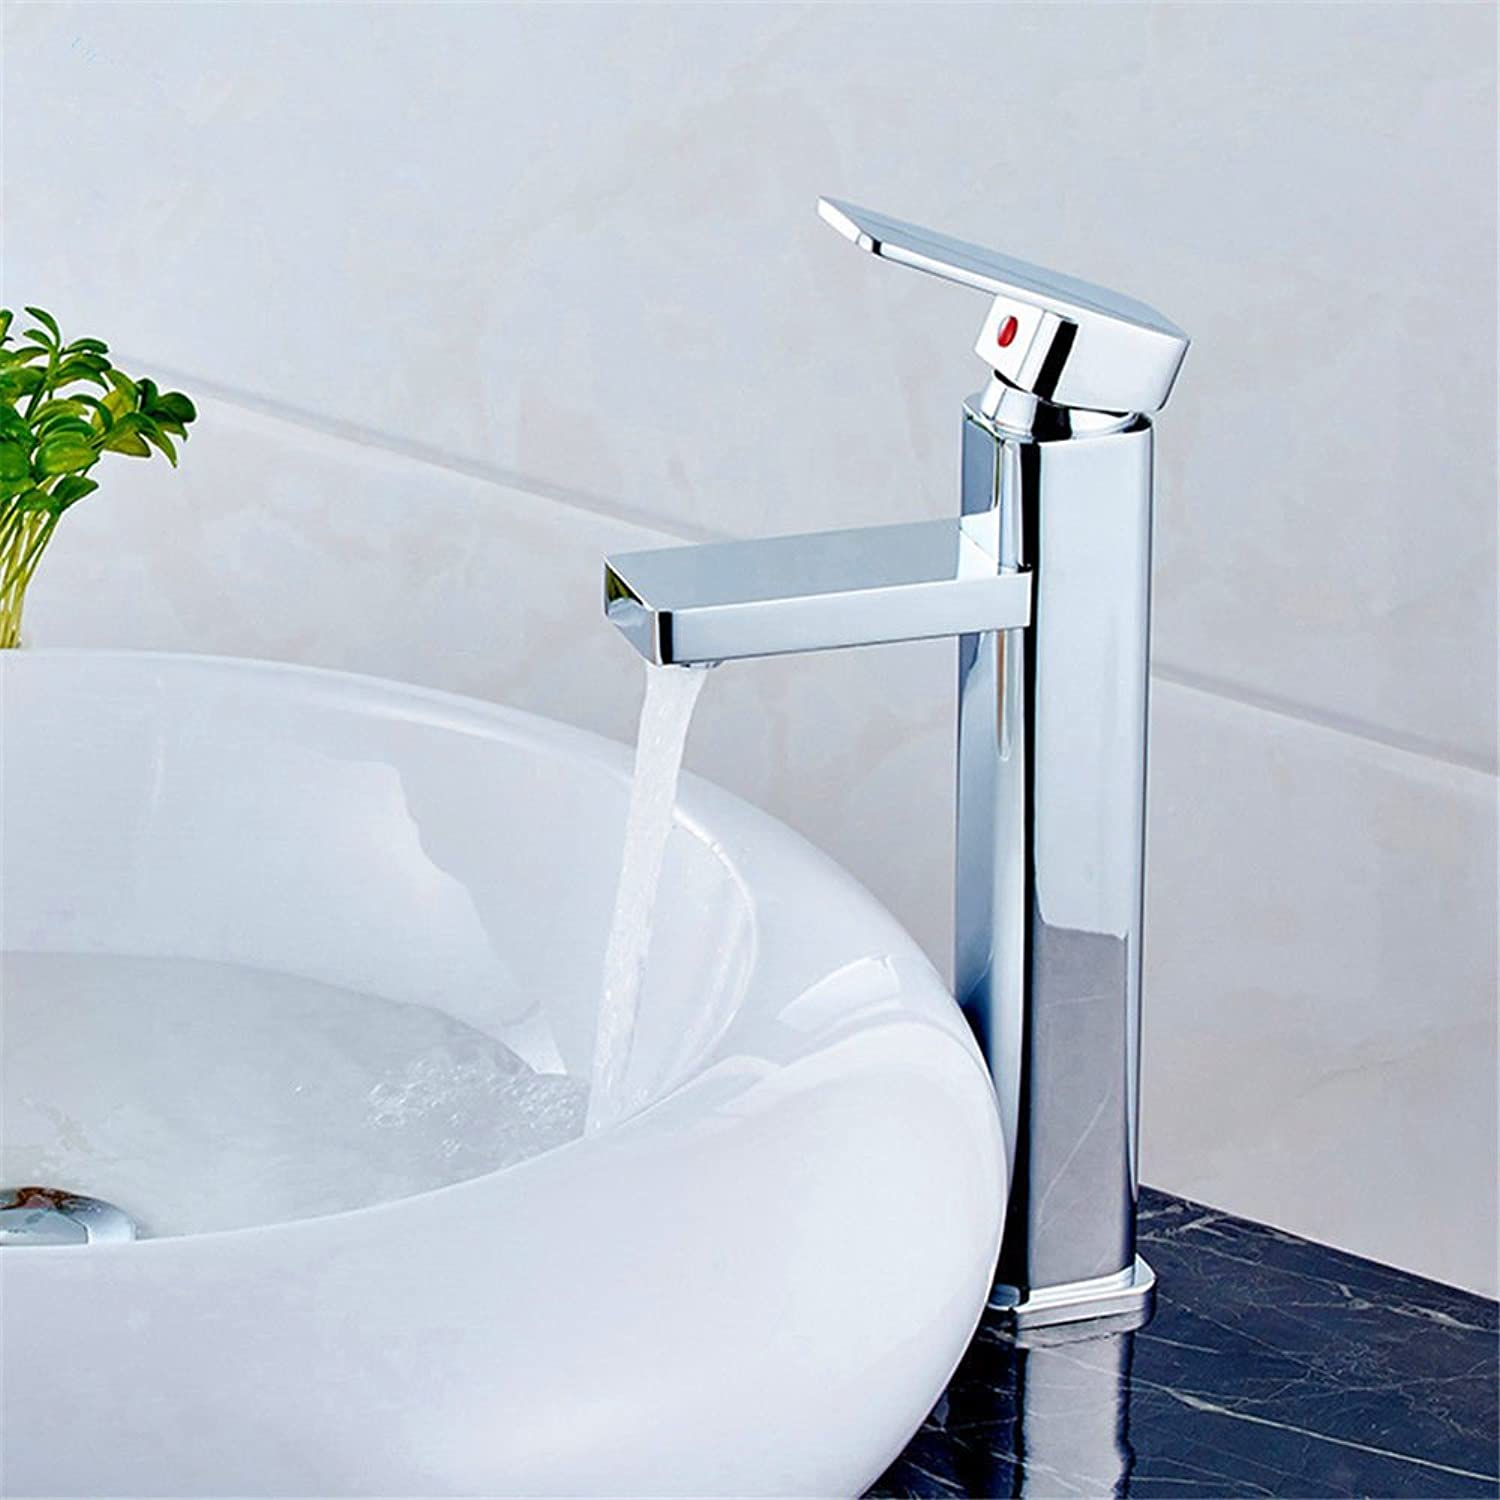 DOJOF Bathroom Sink Faucet Basin Mixer Tap Hot and Cold Water Copper Square Single Lever Single Hole Square Basin Sink Tap Bathroom Bar Faucet